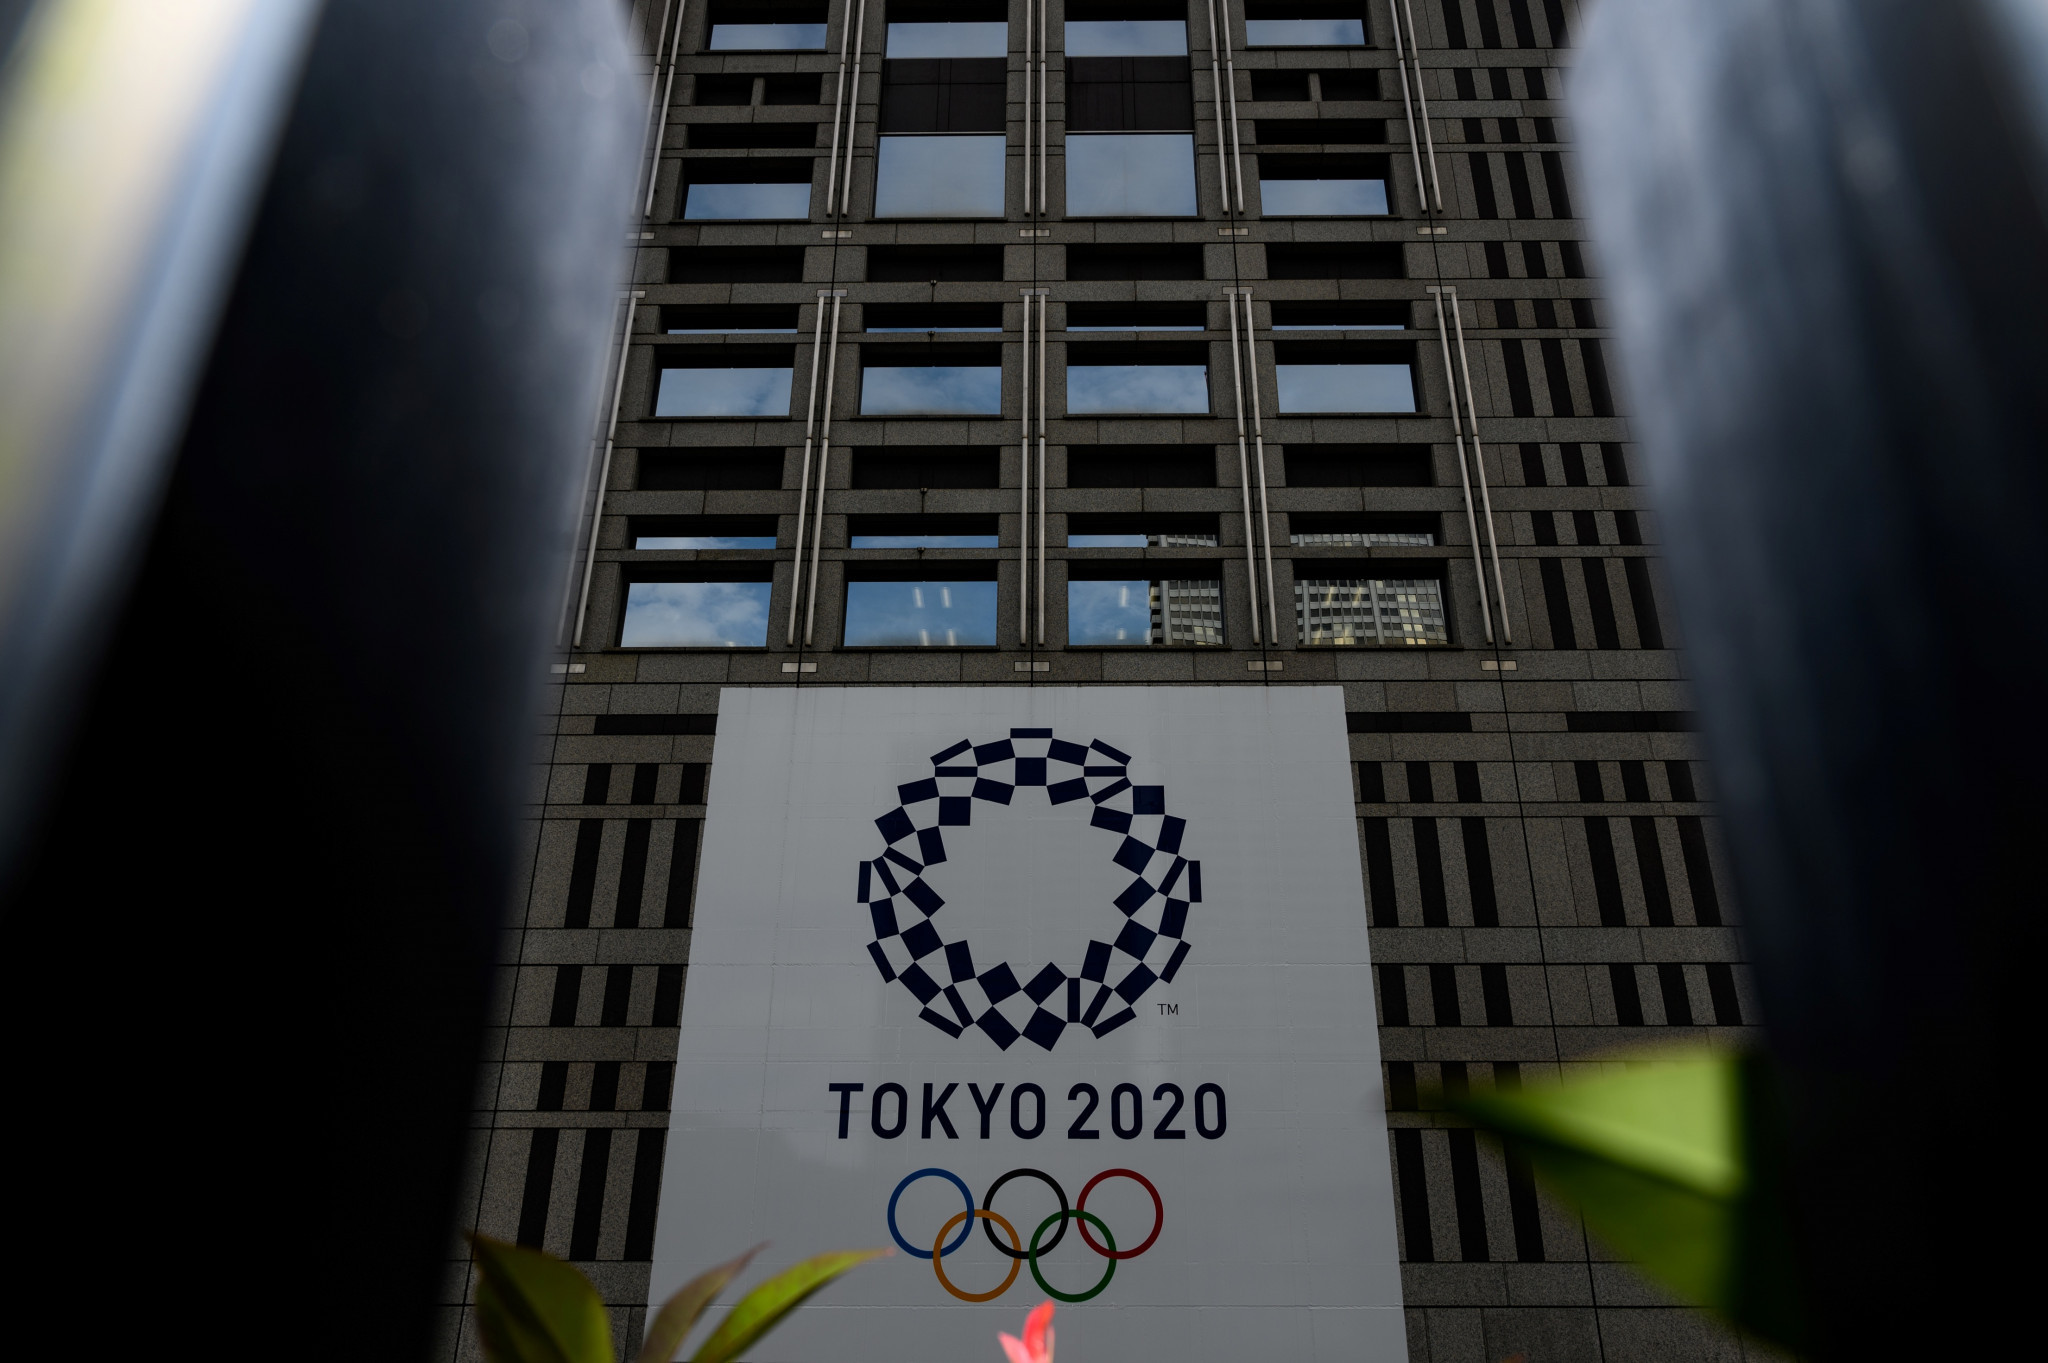 A fifth member of staff at the Organising Committee of the Tokyo 2020 Olympic and Paralympic Games has tested positive for COVID-19 ©Getty Images